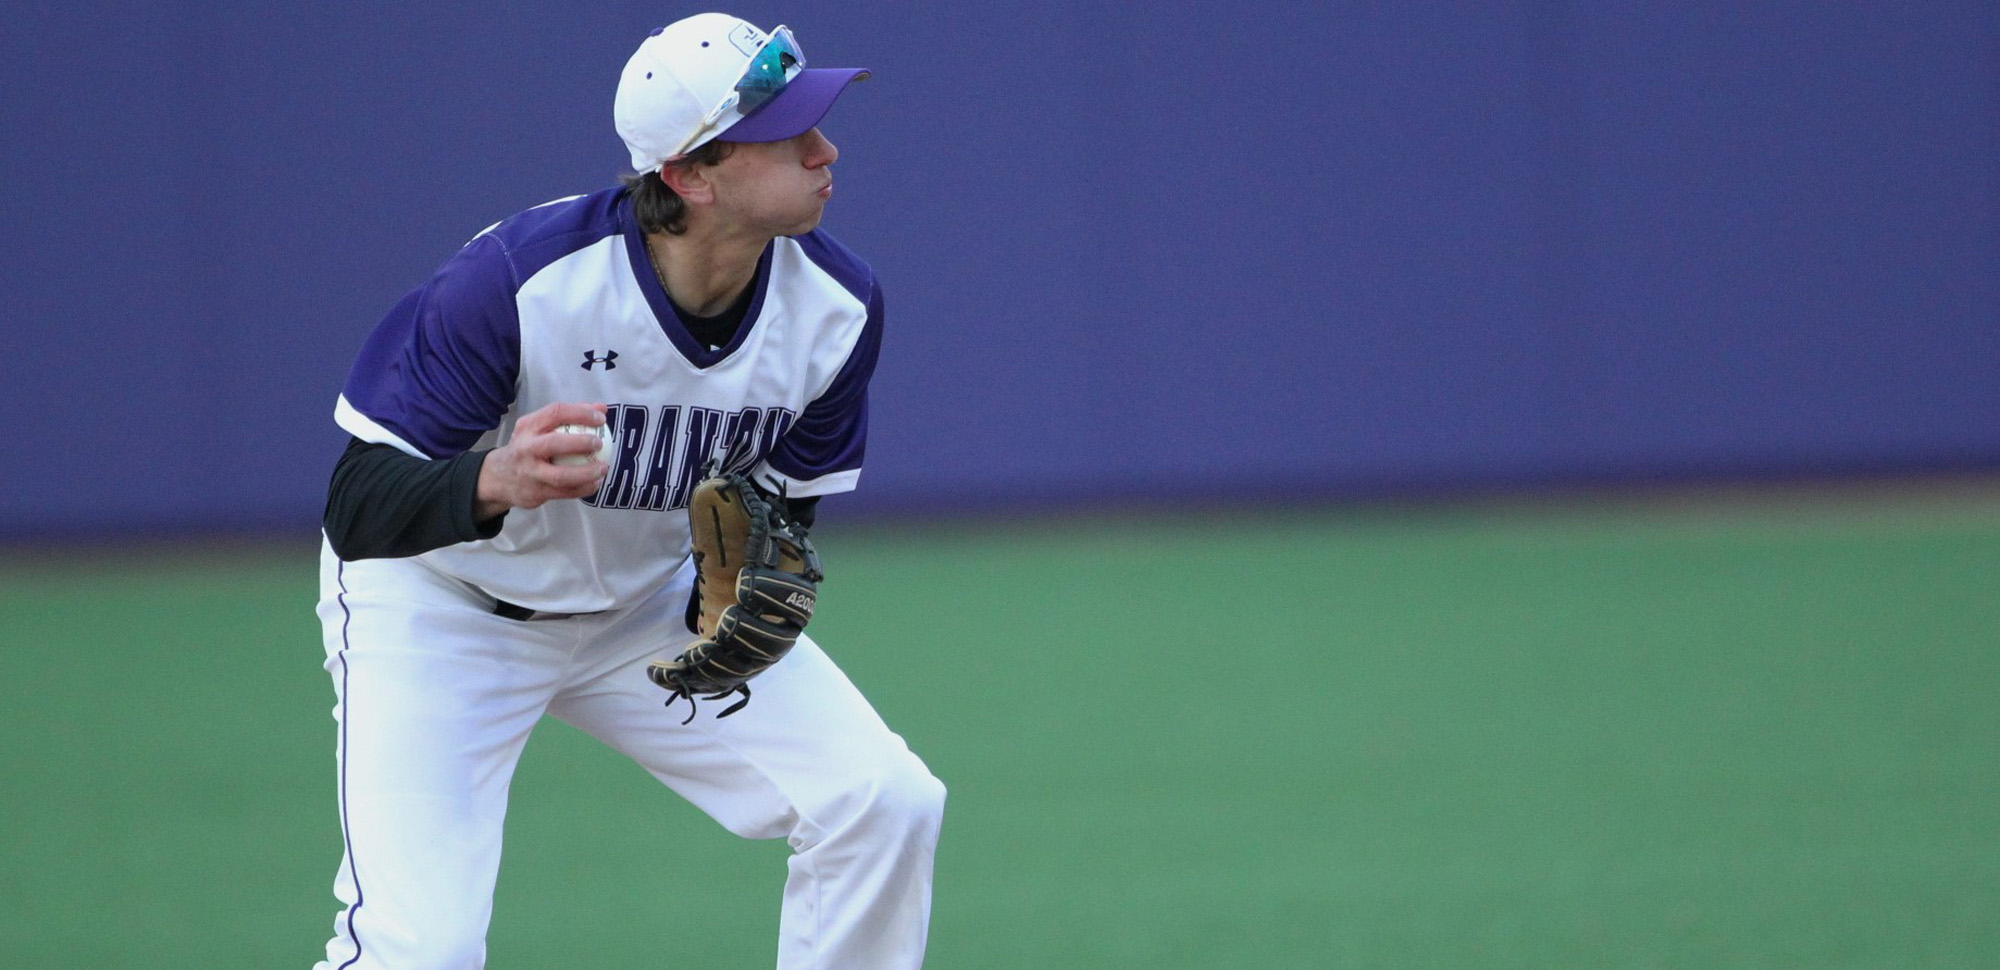 Sophomore Brandon Peters had a grand slam in the Royals' loss at William Paterson on Tuesday.